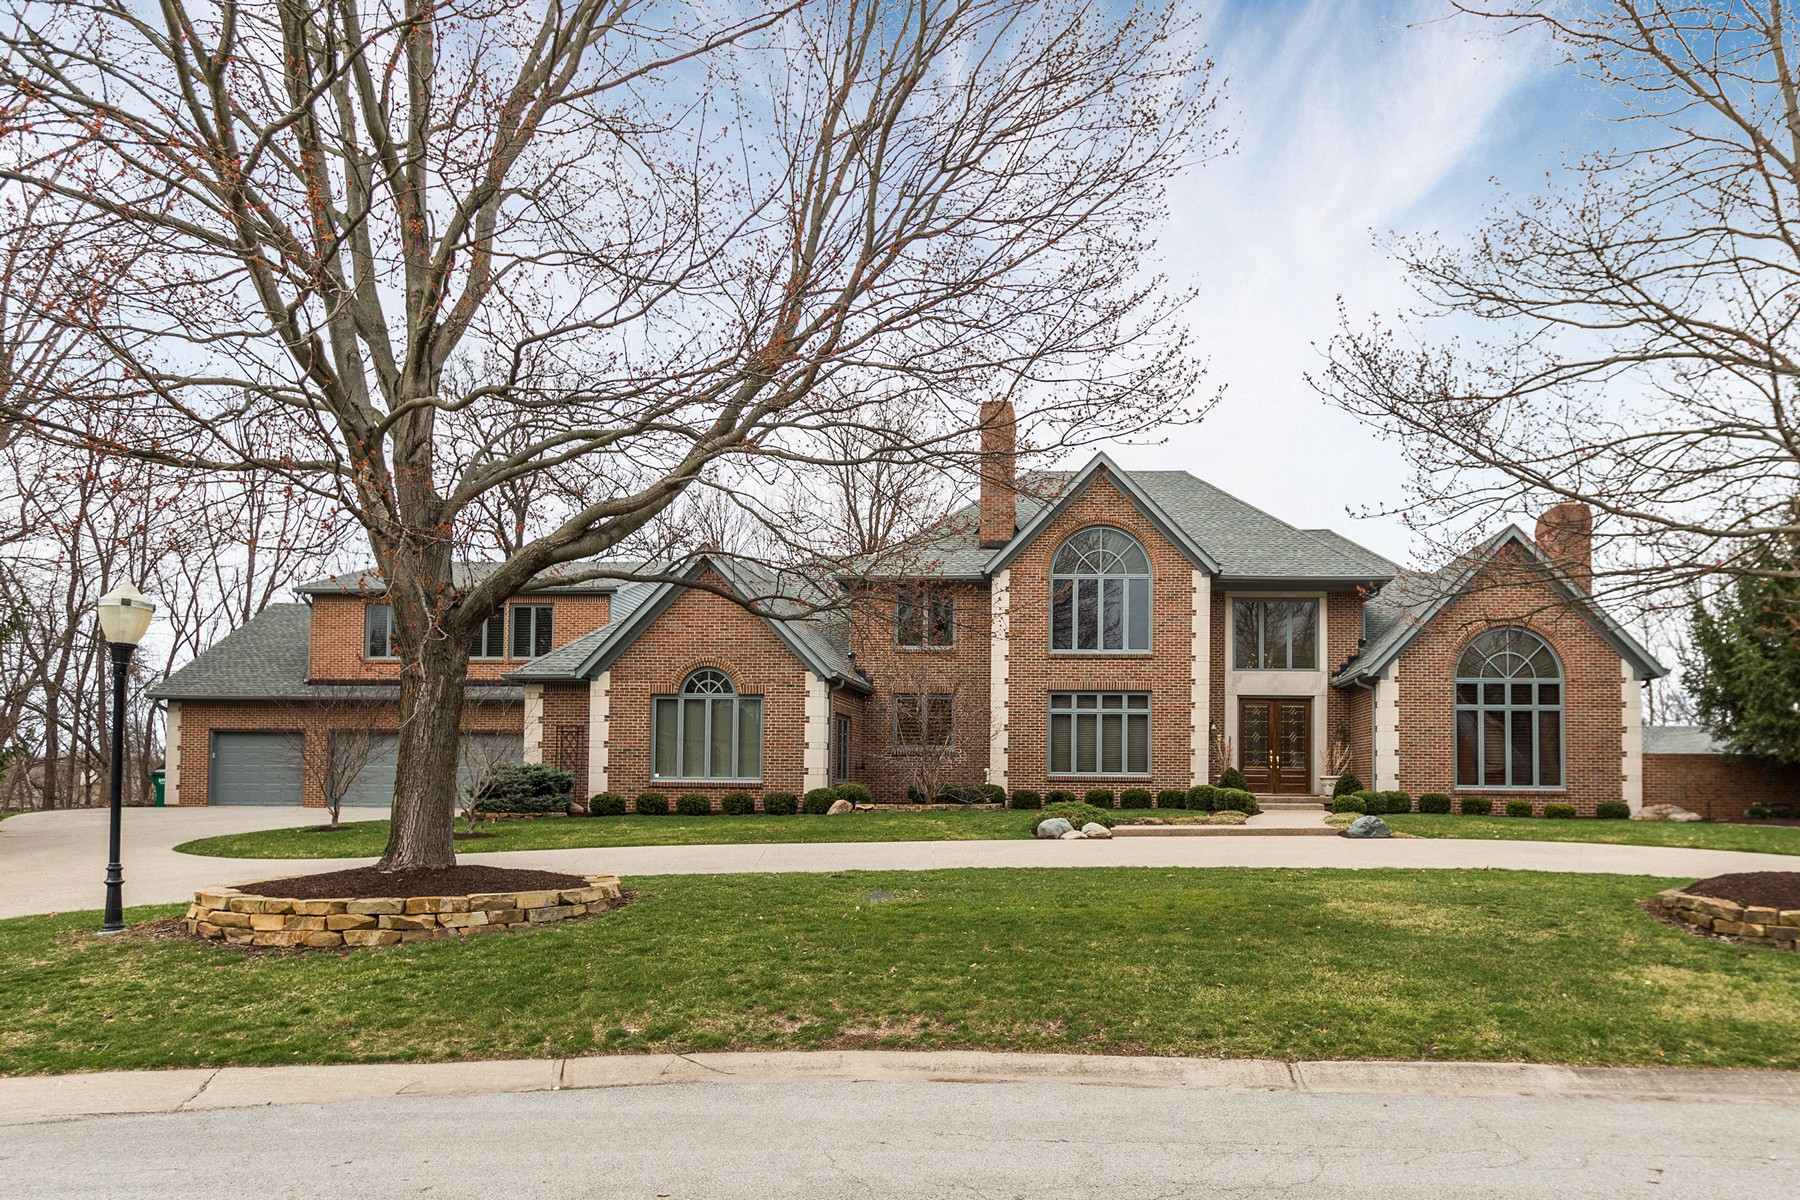 Single Family Home for Sale at Privacy and Tranquility 6780 Barrington Place Fishers, Indiana 46038 United States